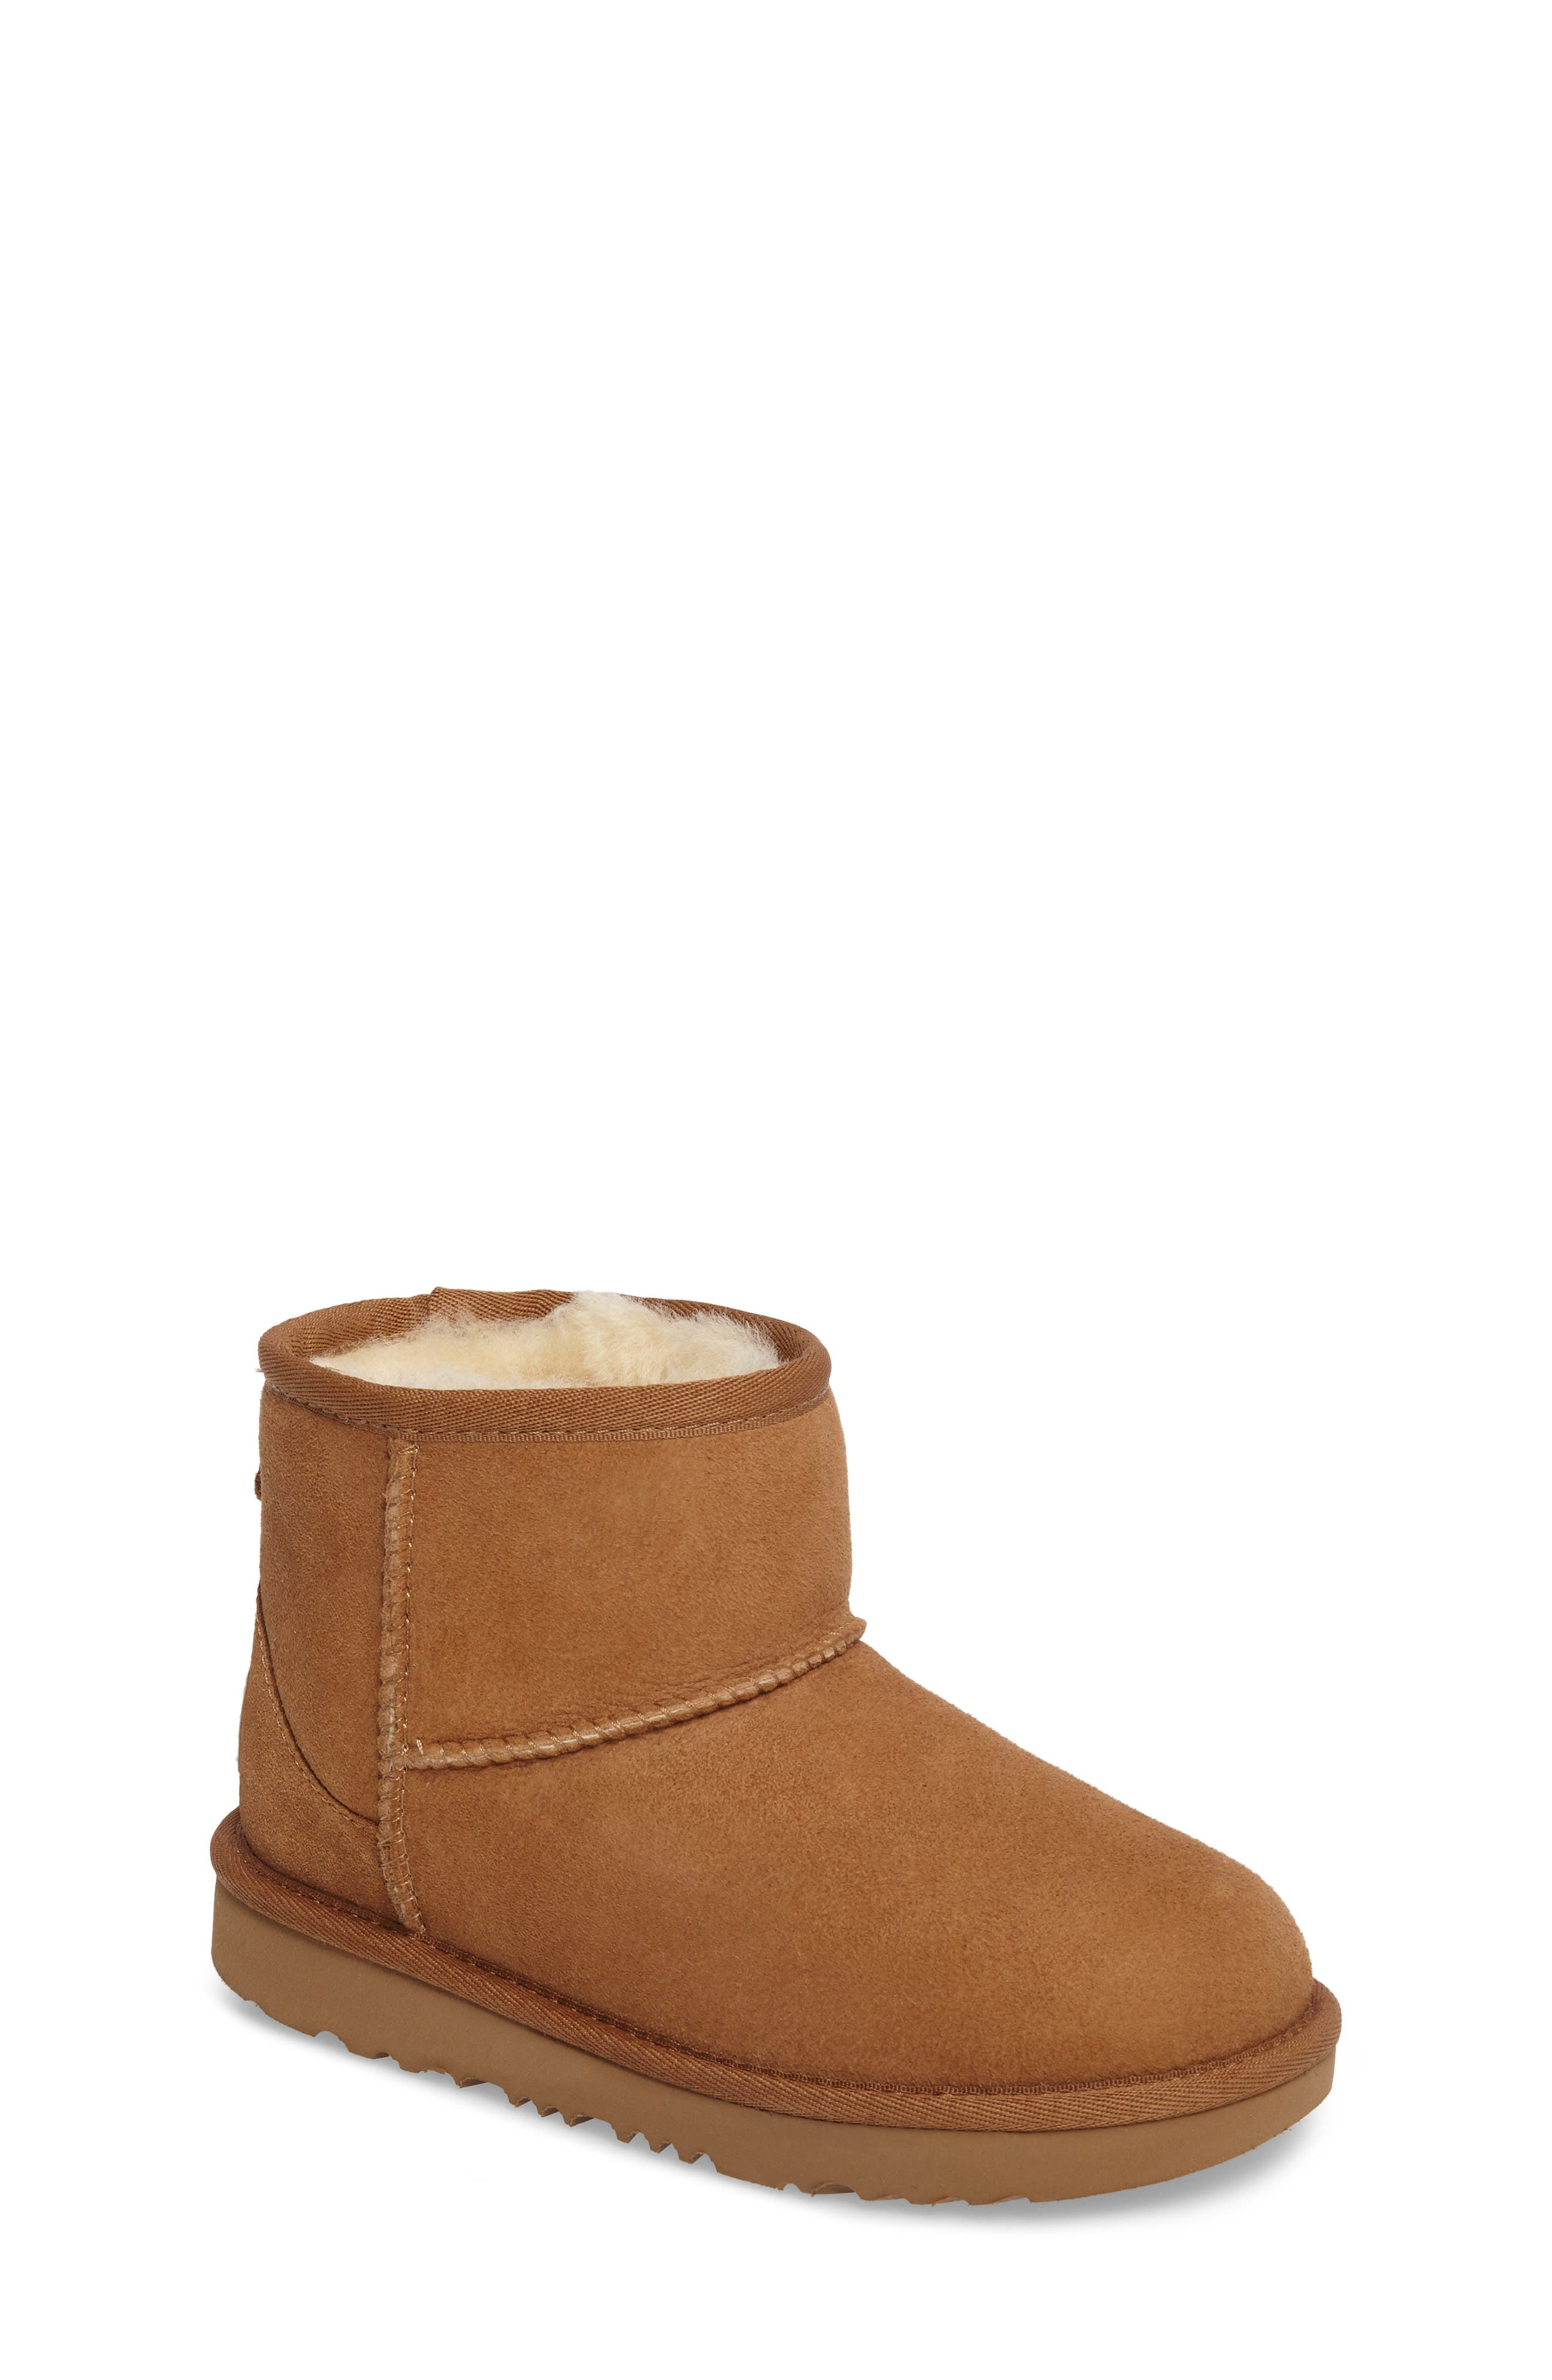 Classic Mini II Water-Resistant Genuine Shearling Boot,                         Main,                         color, CHESTNUT